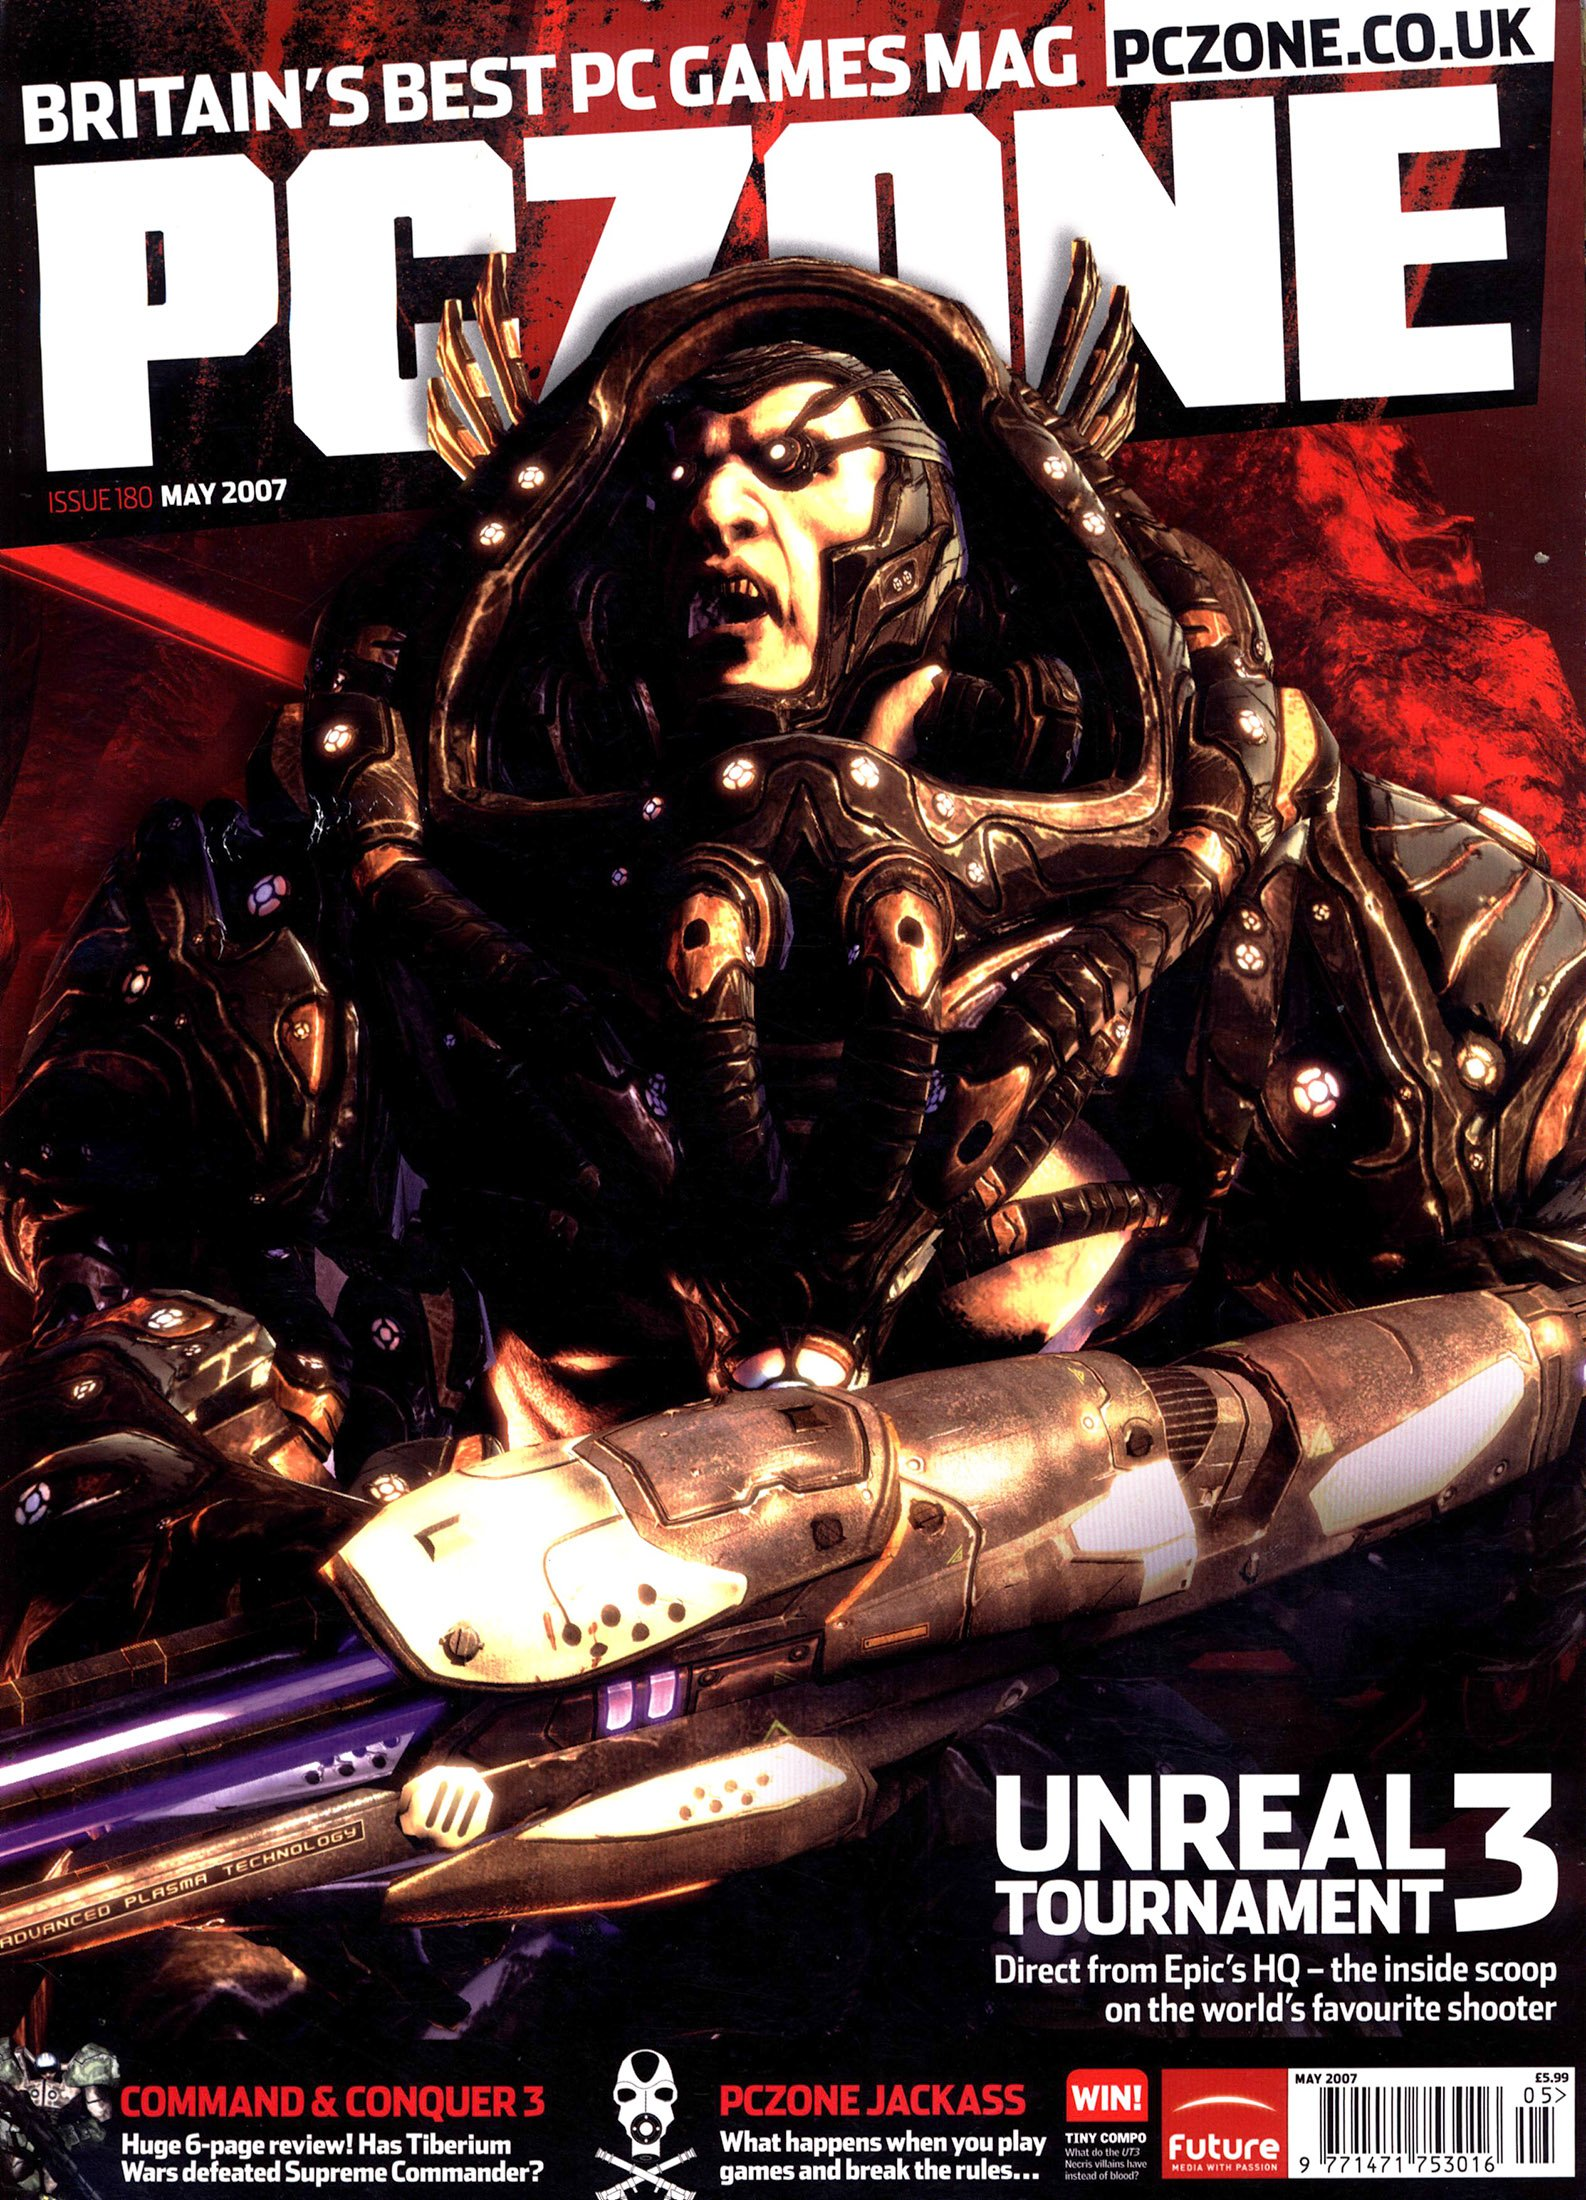 PC Zone Issue 180 (May 2007)